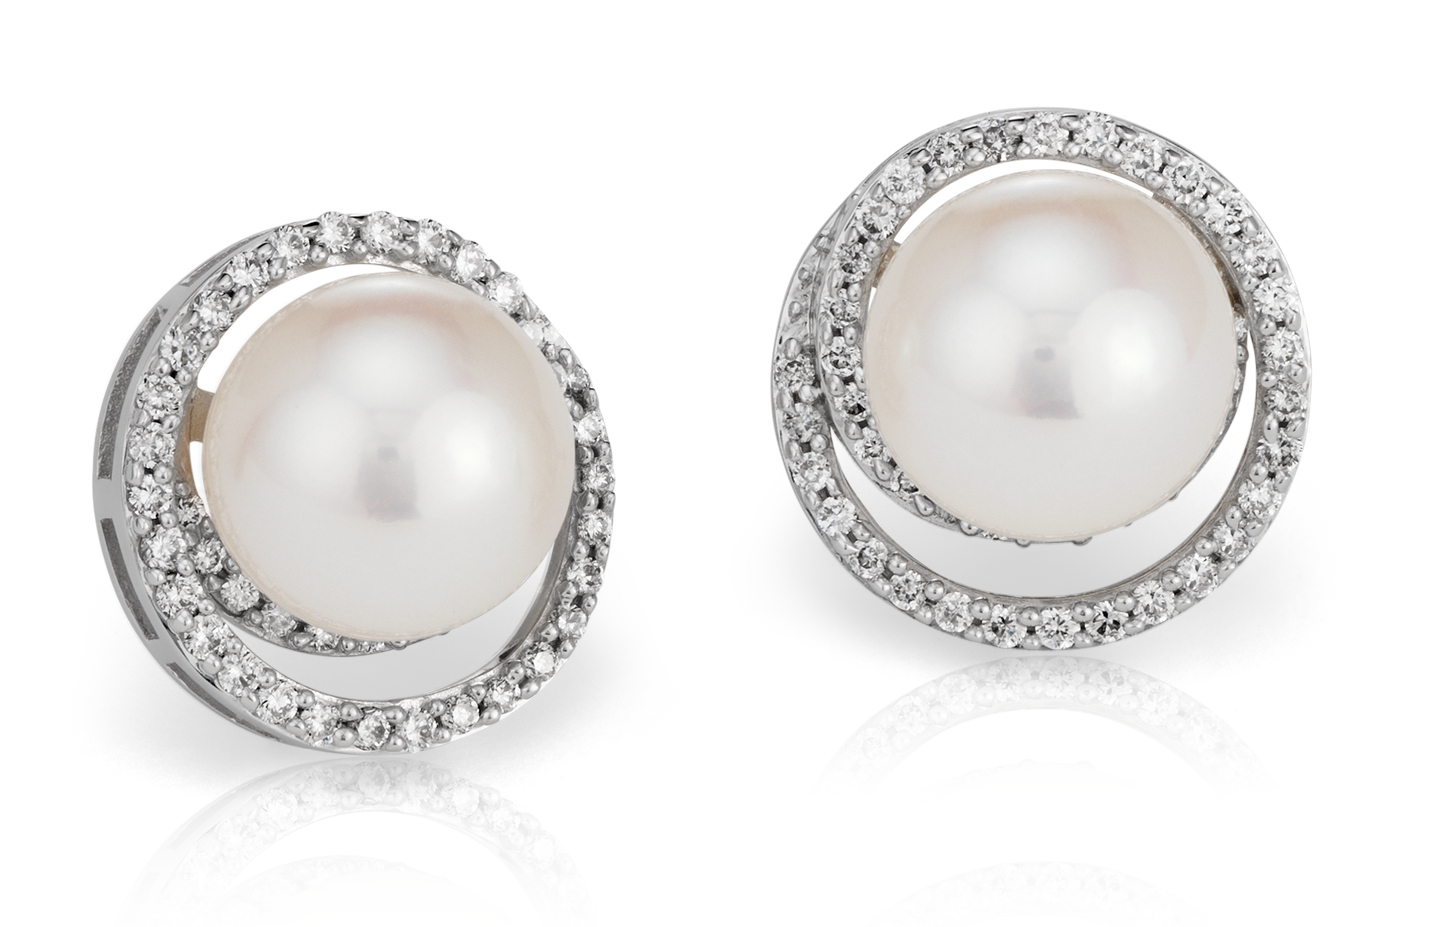 Freshwater Cultured Pearl and Diamond Swirl Earrings in 14k White Gold